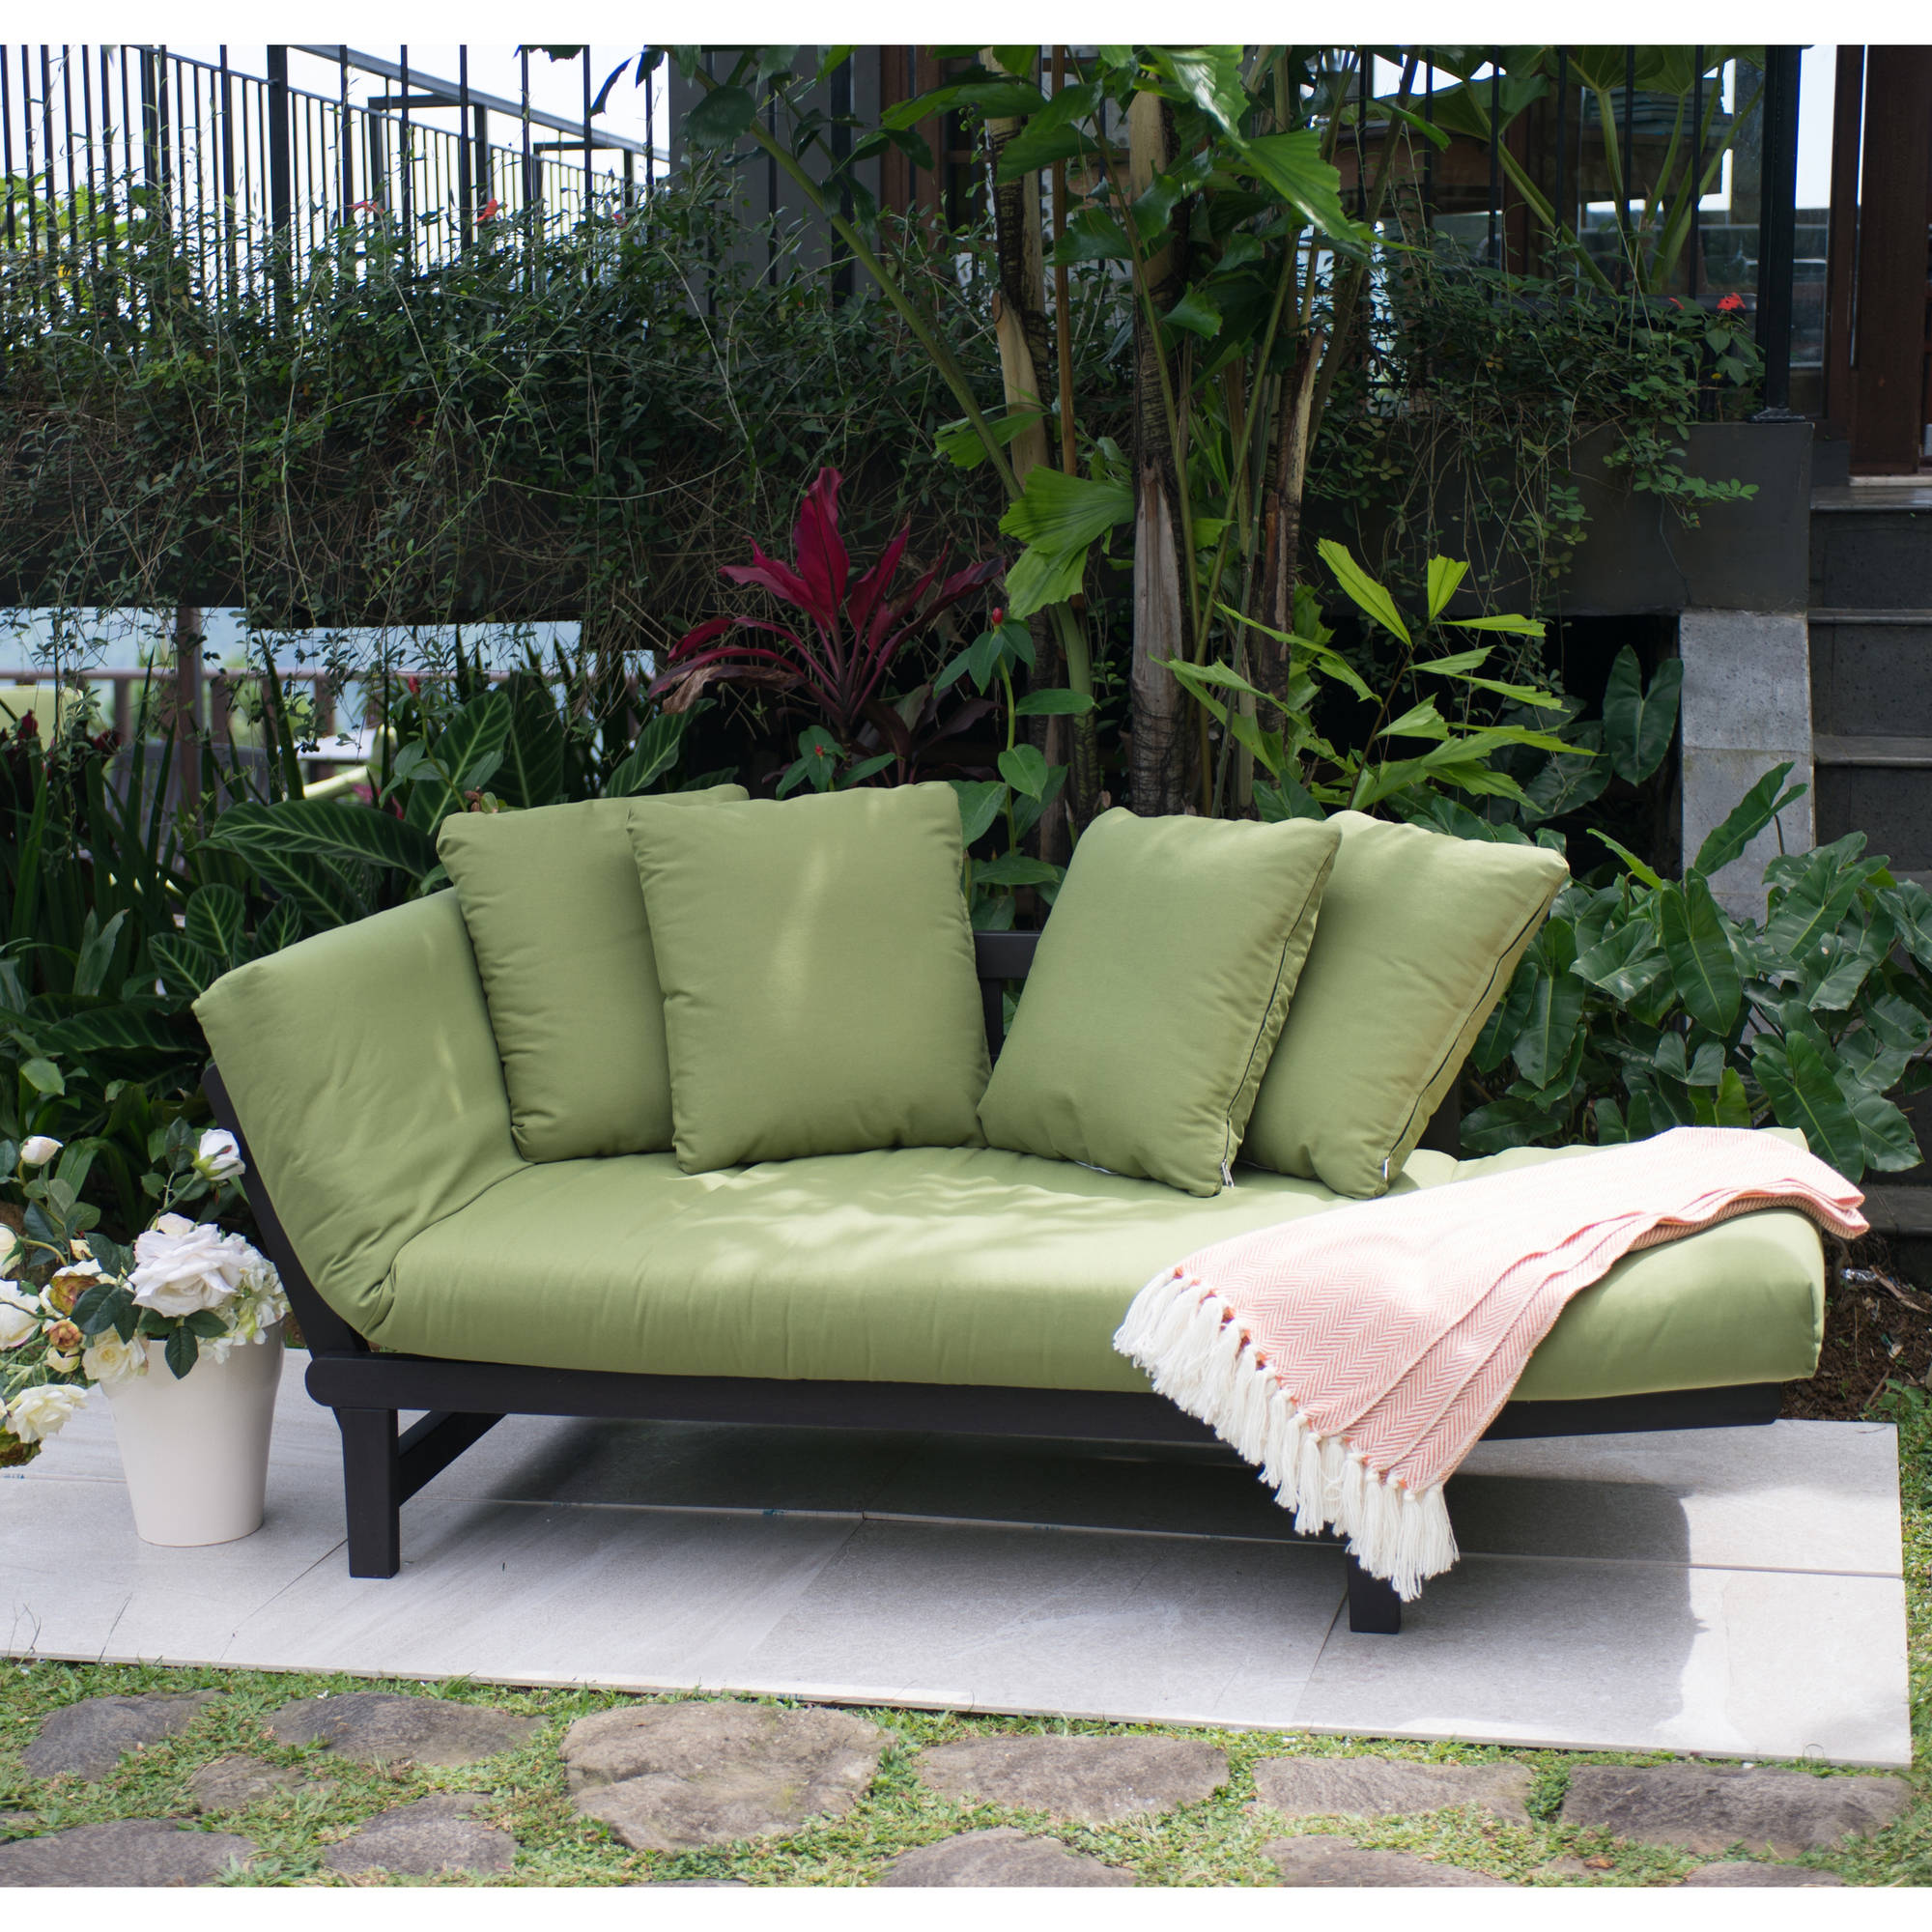 sofa in walmart milano rattan set better homes gardens delahey outdoor daybed with cushions green